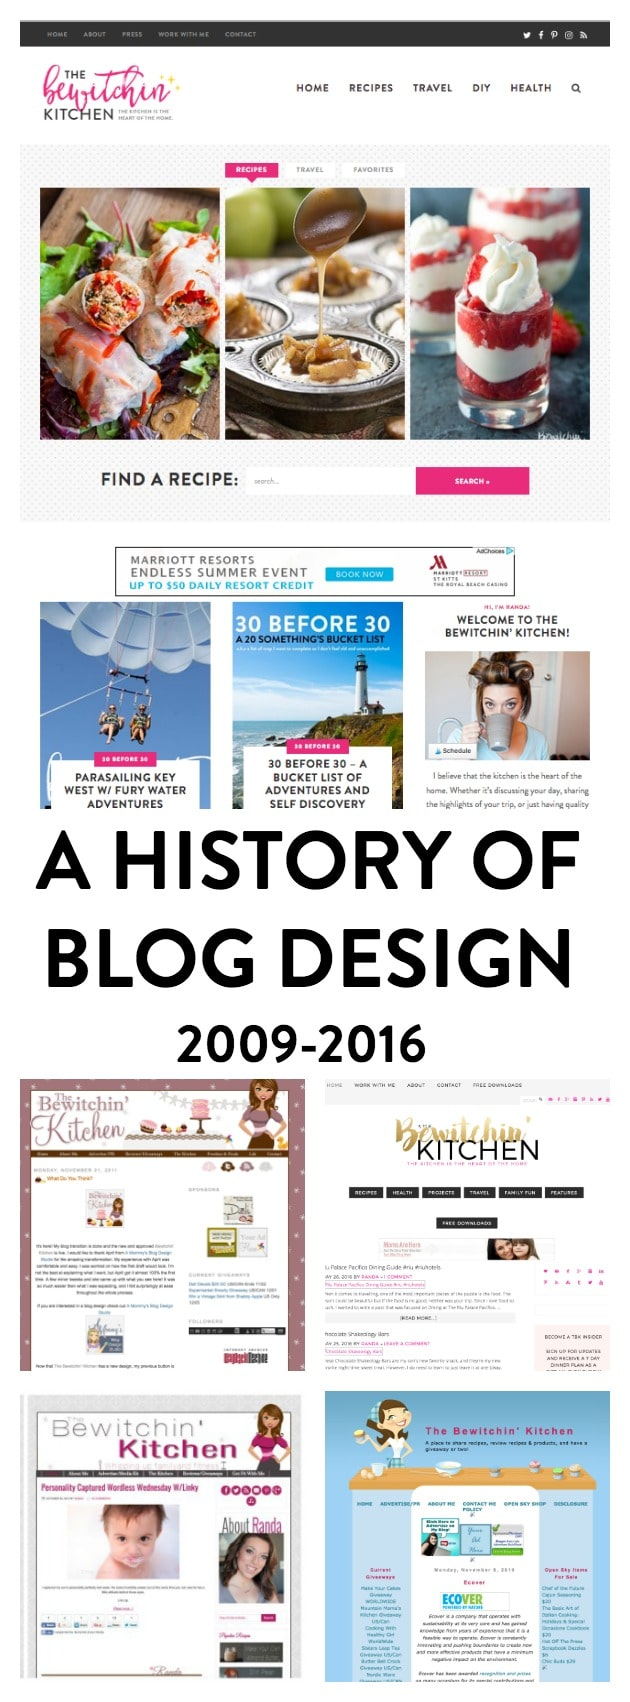 A history of blog design and finding your blog's identity. Site design: Purr Design. Blog: The Bewitchin' Kitchen. From 2009-2016.